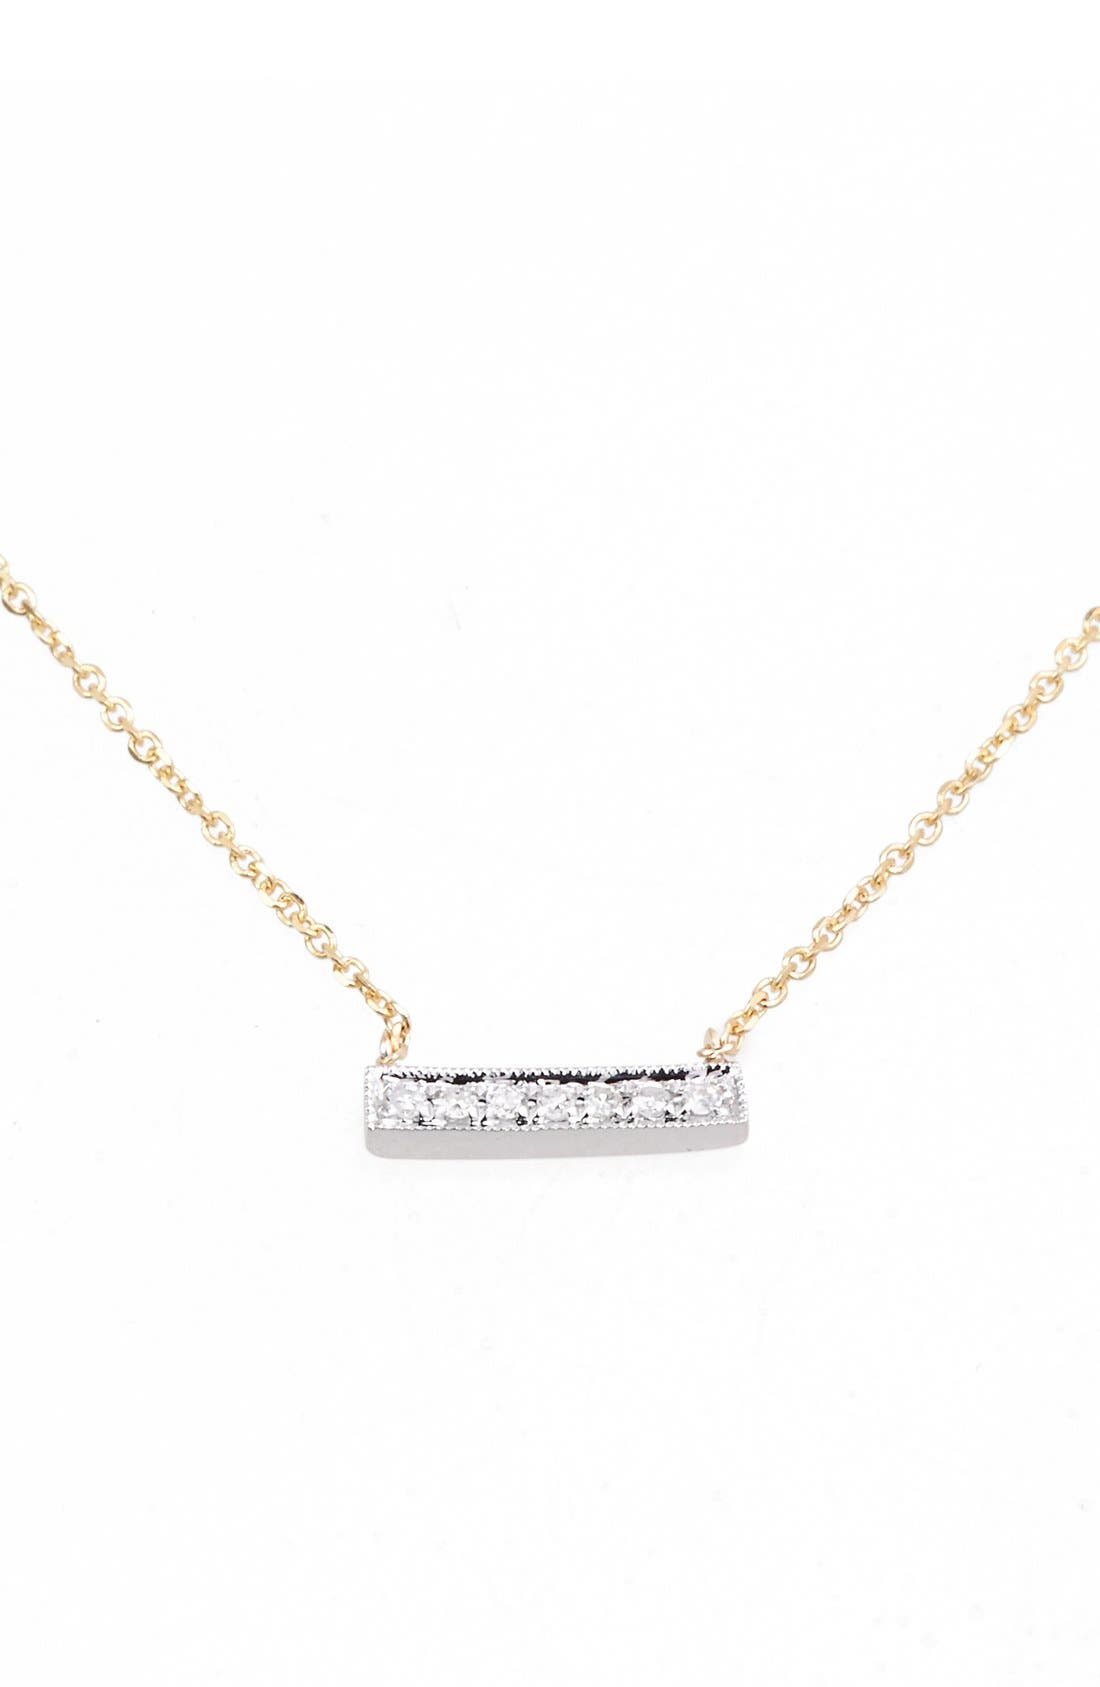 'Sylvie Rose' Diamond Bar Pendant Necklace,                         Main,                         color, YELLOW GOLD